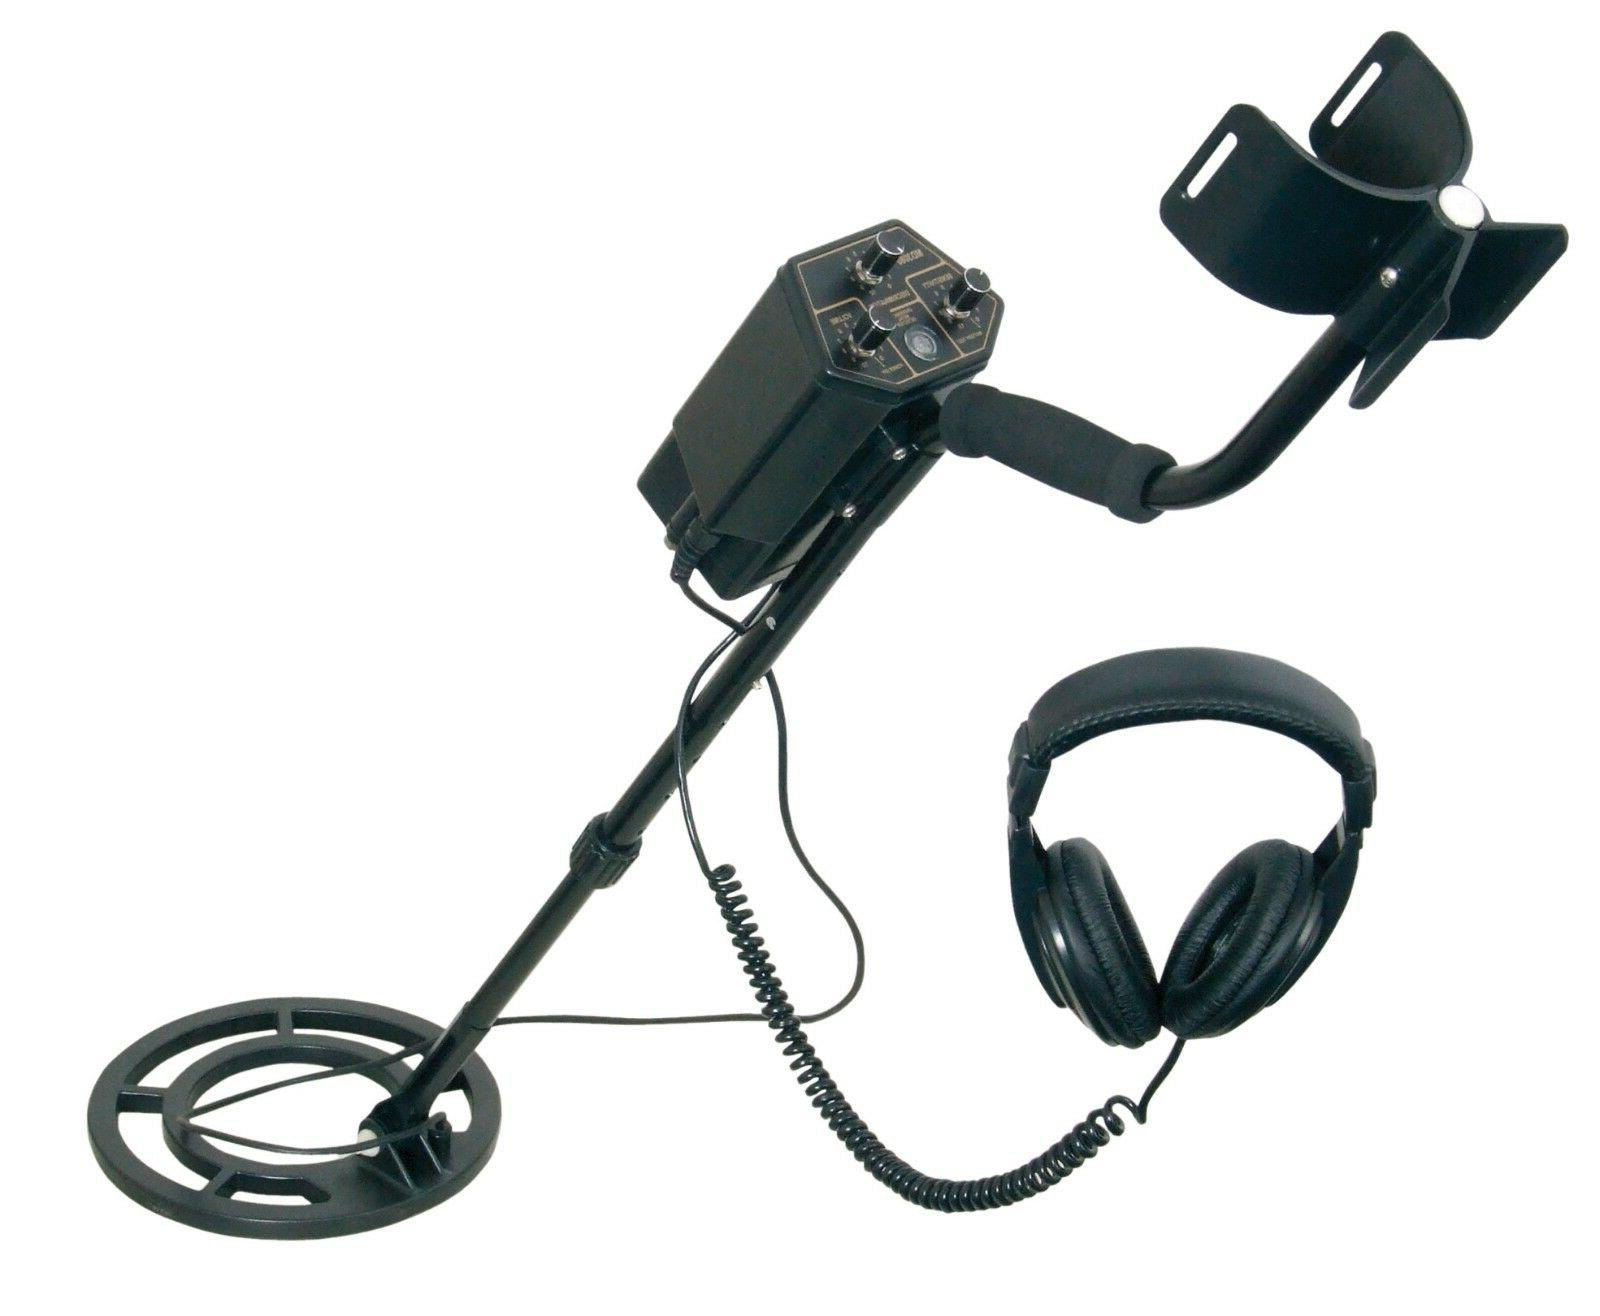 Altai Treasure Professional Waterproof Metal Detector